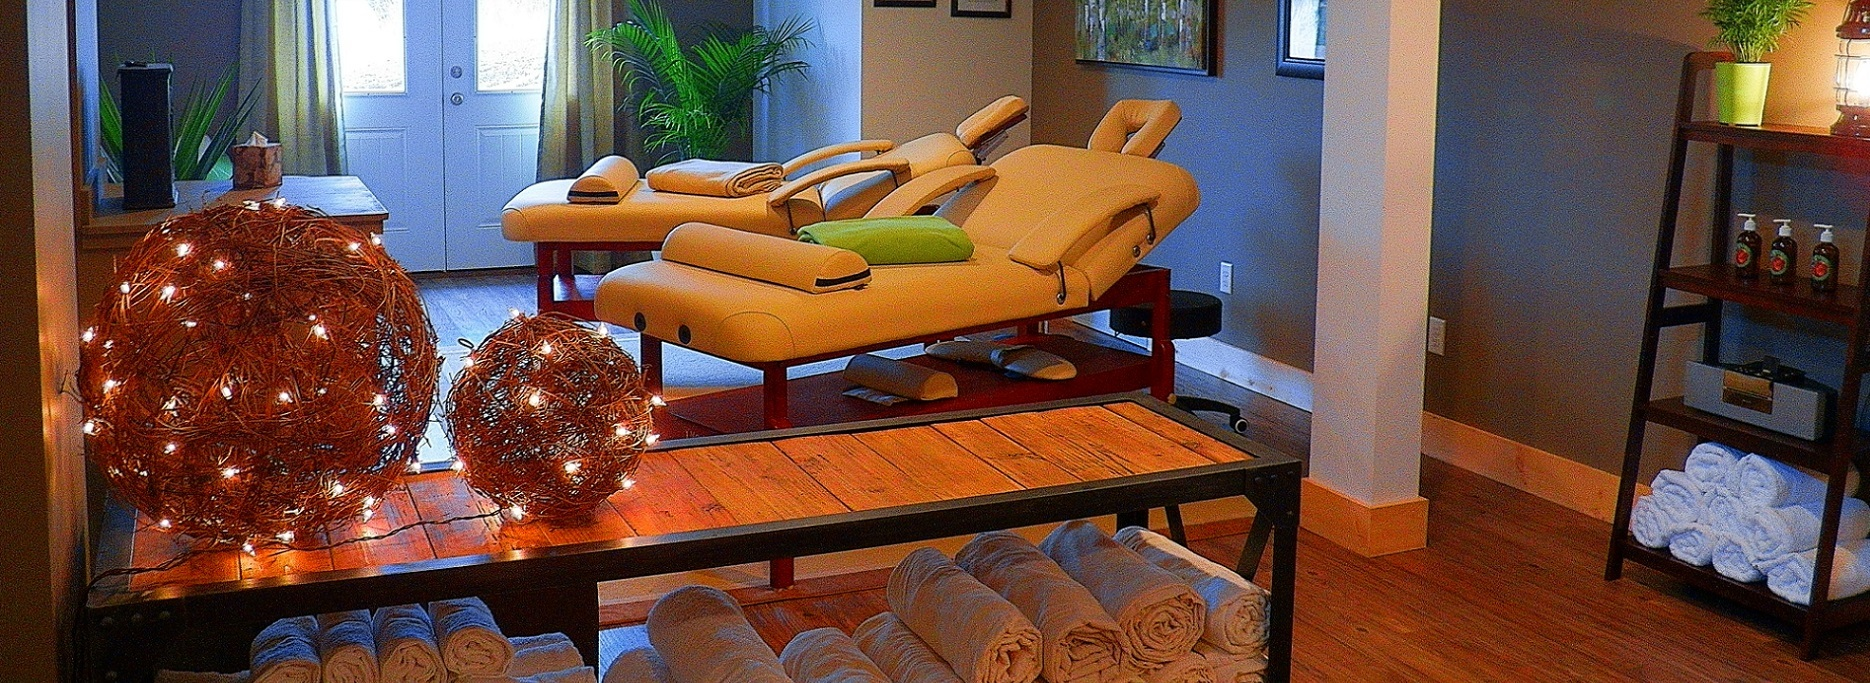 add a massage or sauna session to your stay